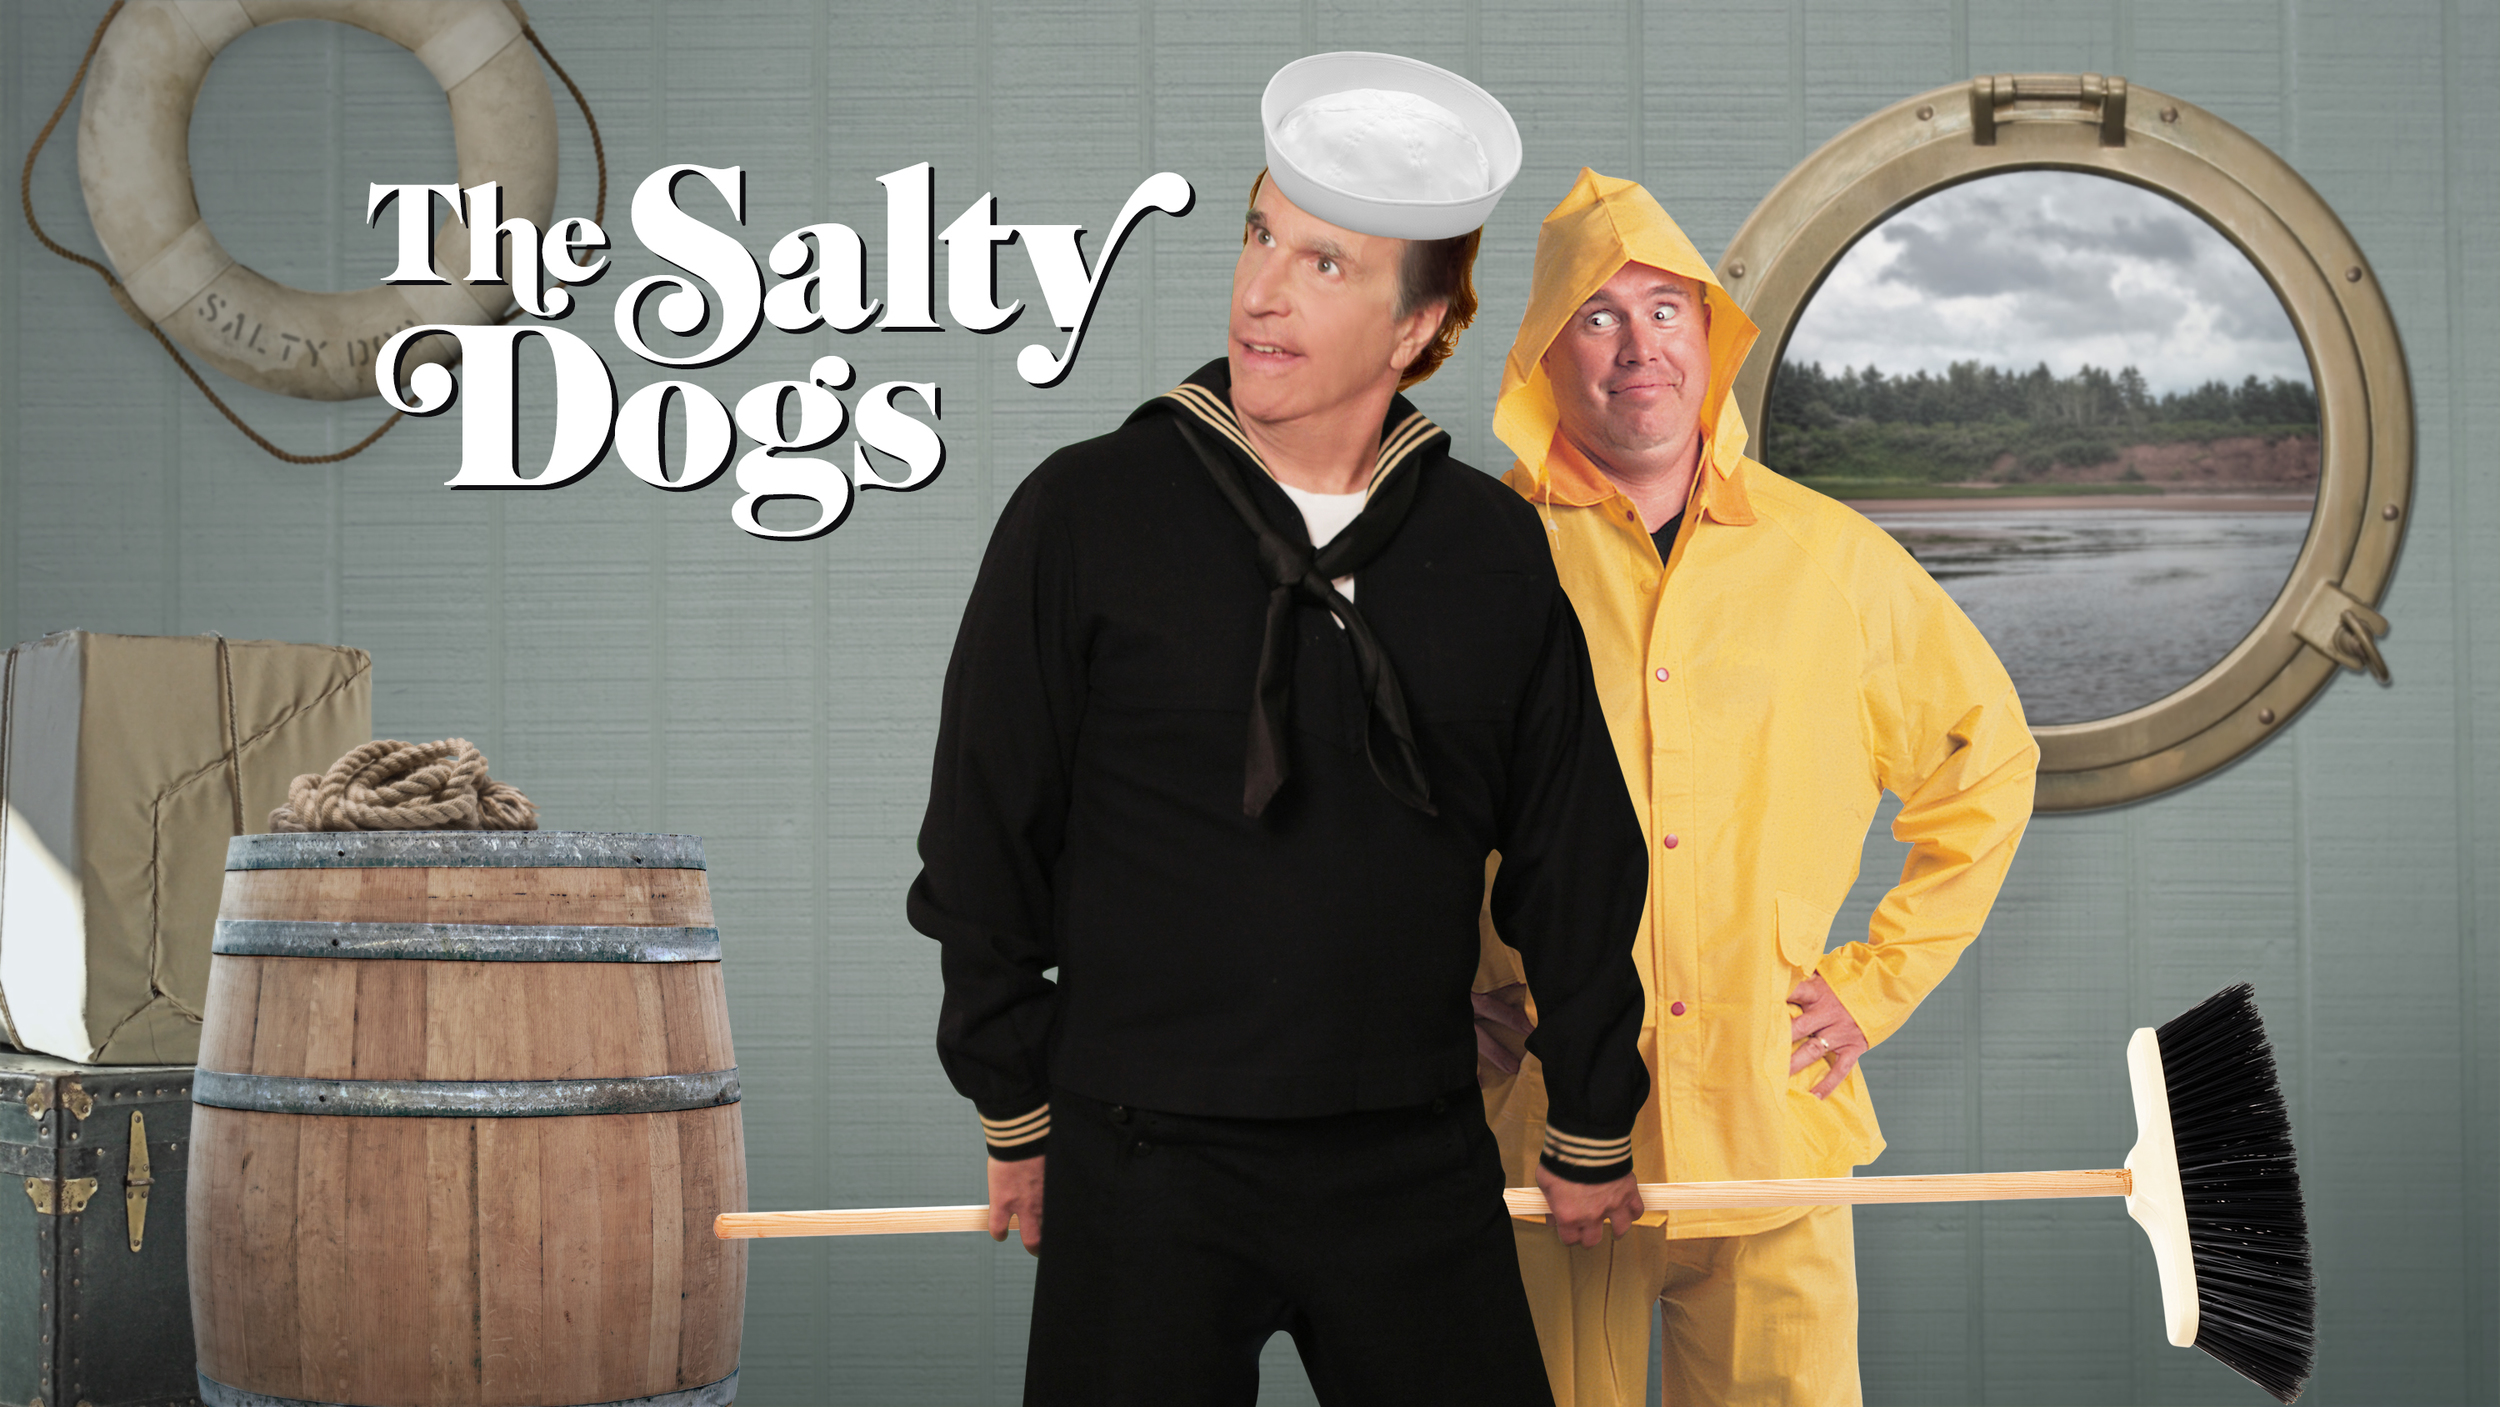 Childrens Hospital/The Salty Dogs title card